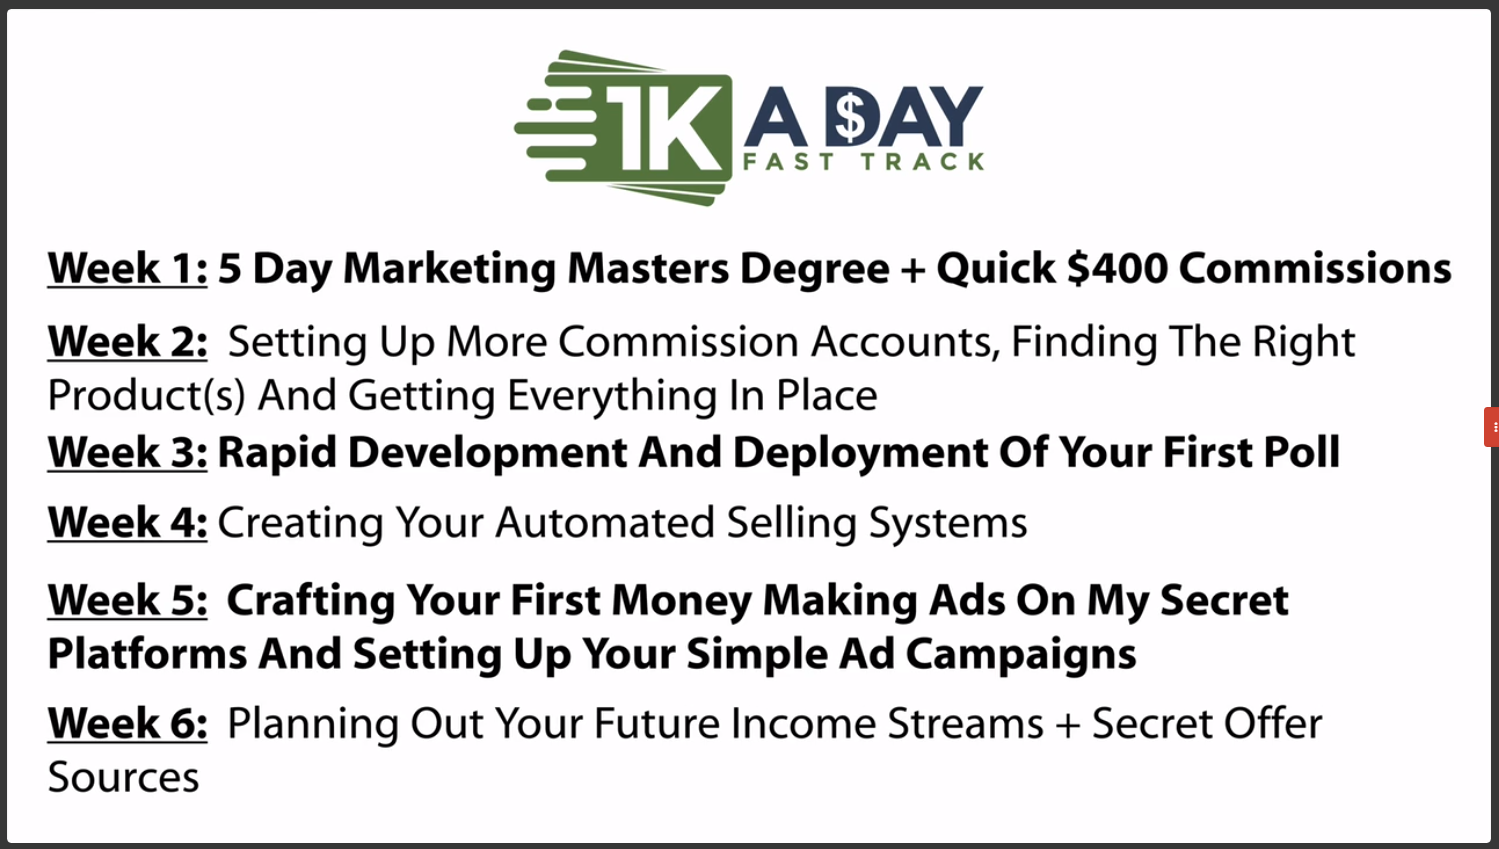 Training Program 1k A Day Fast Track  Cheap Online